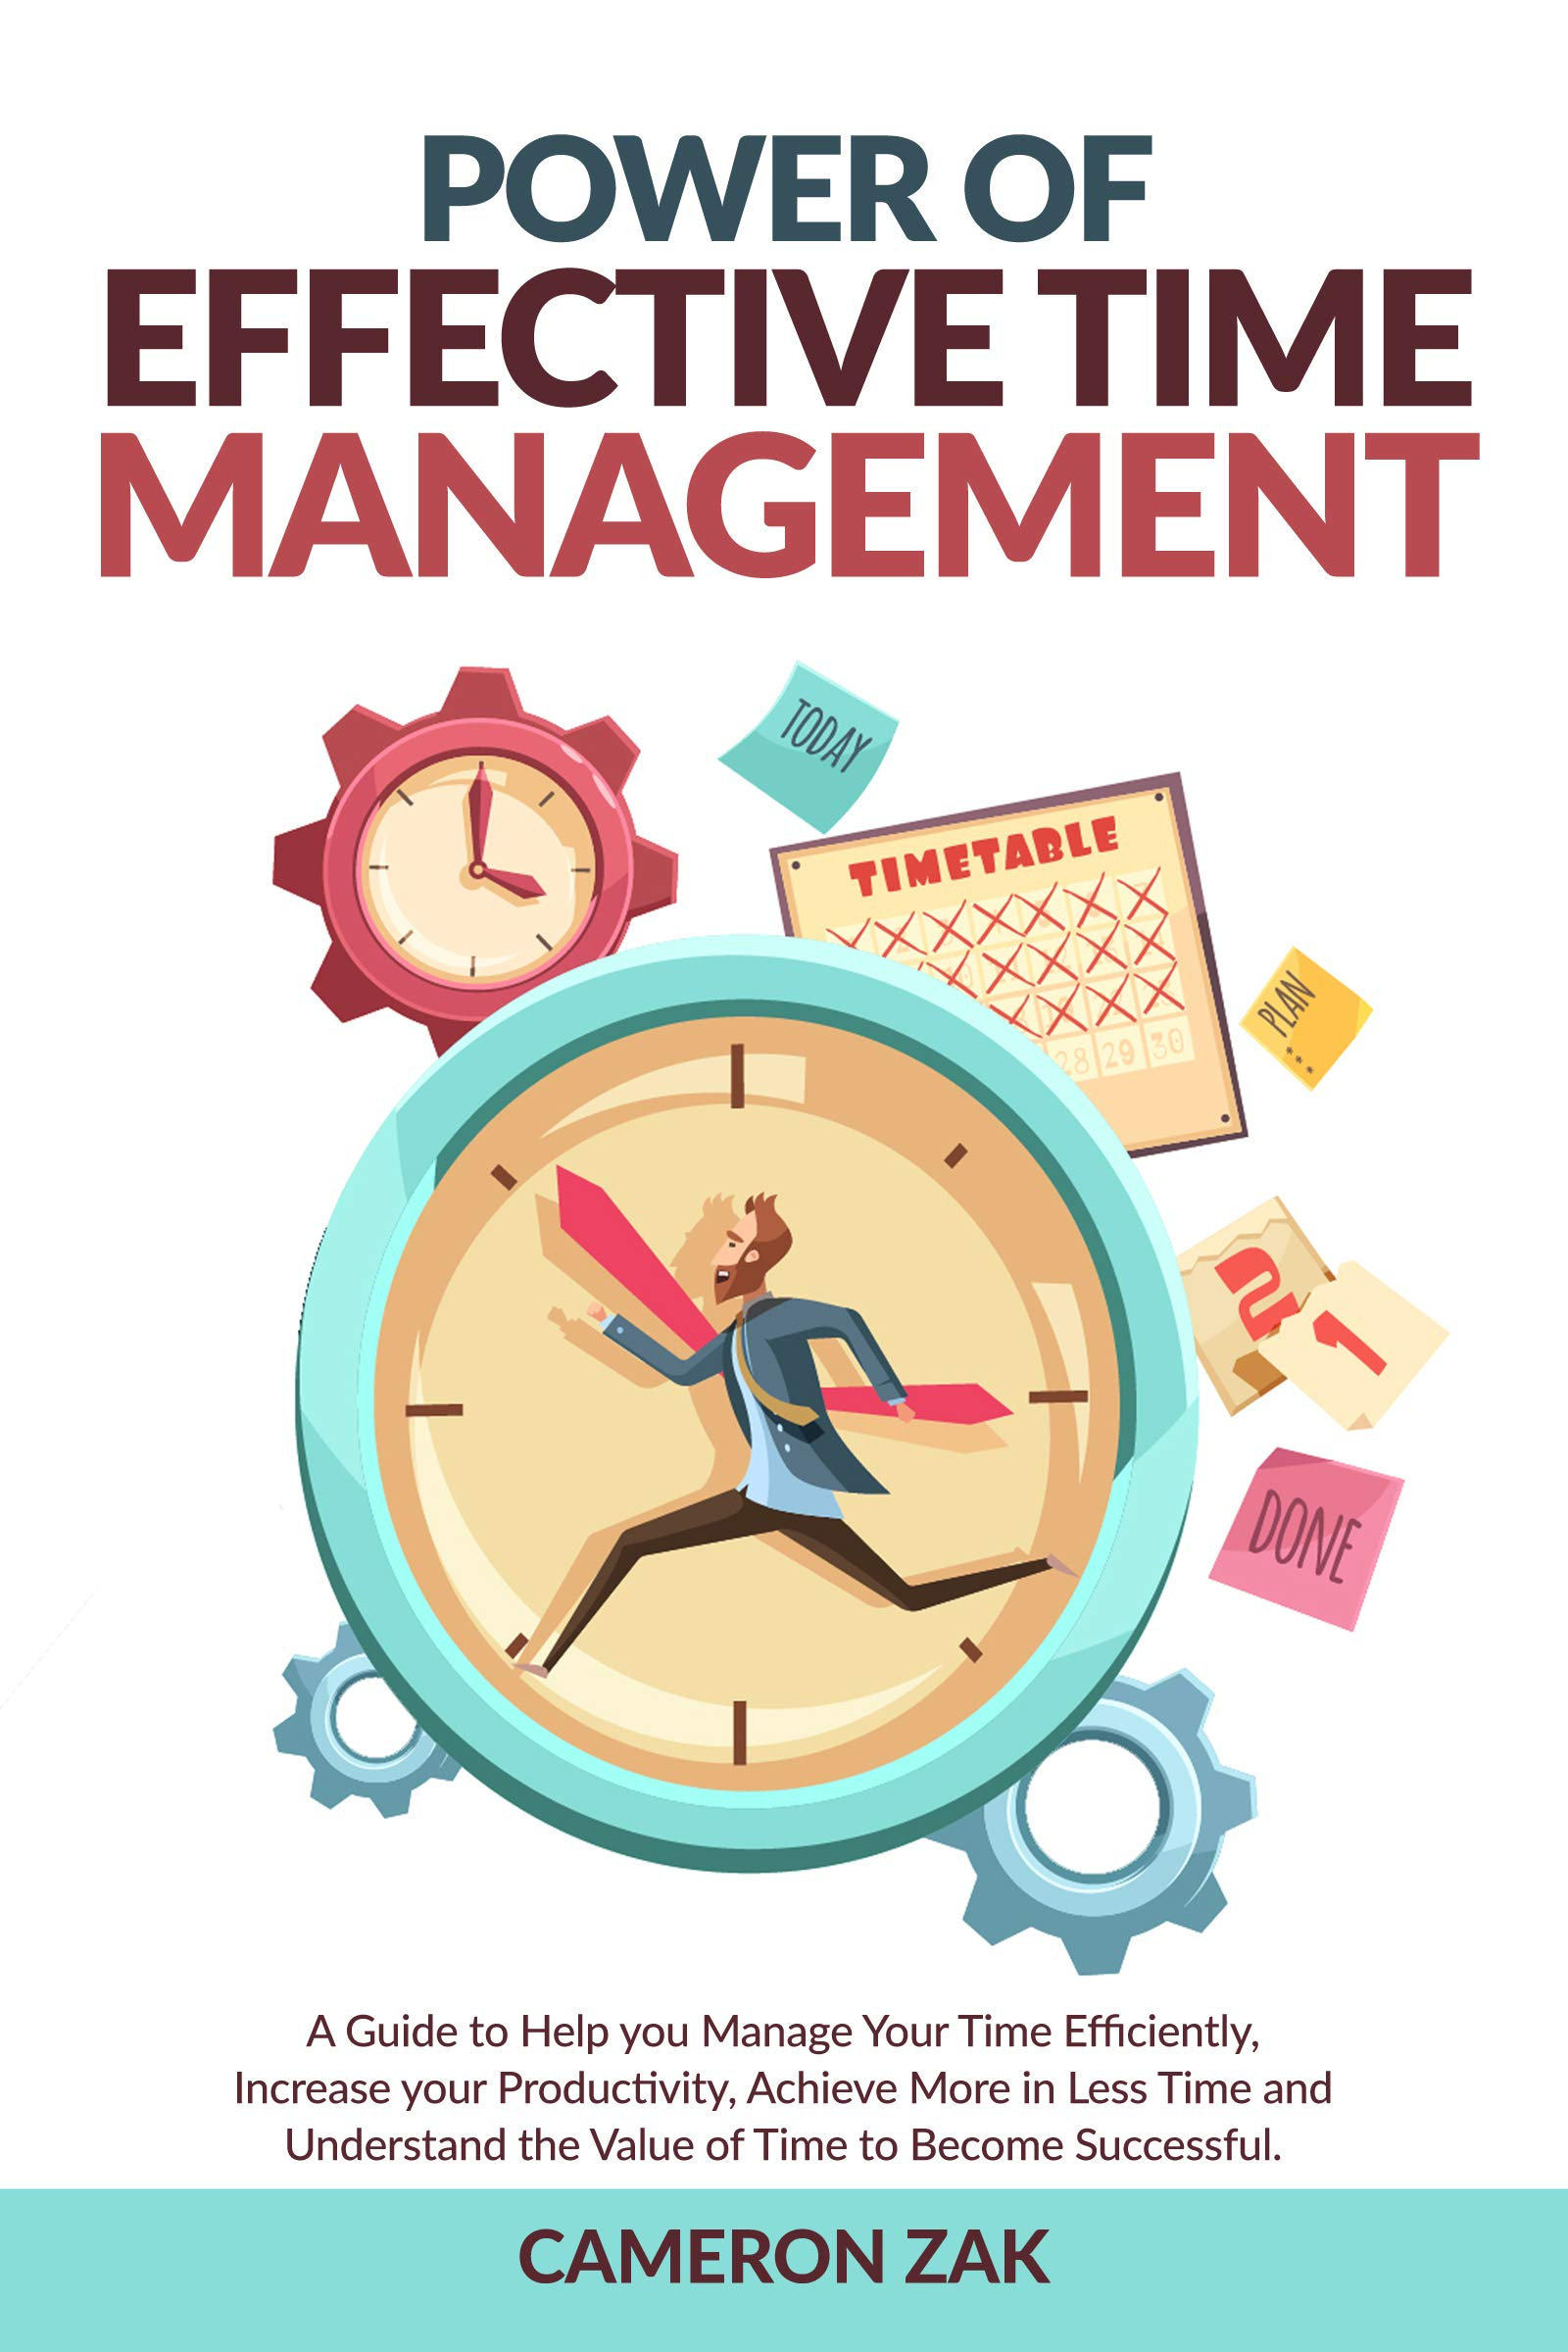 POWER OF EFFECTIVE TIME MANAGEMENT